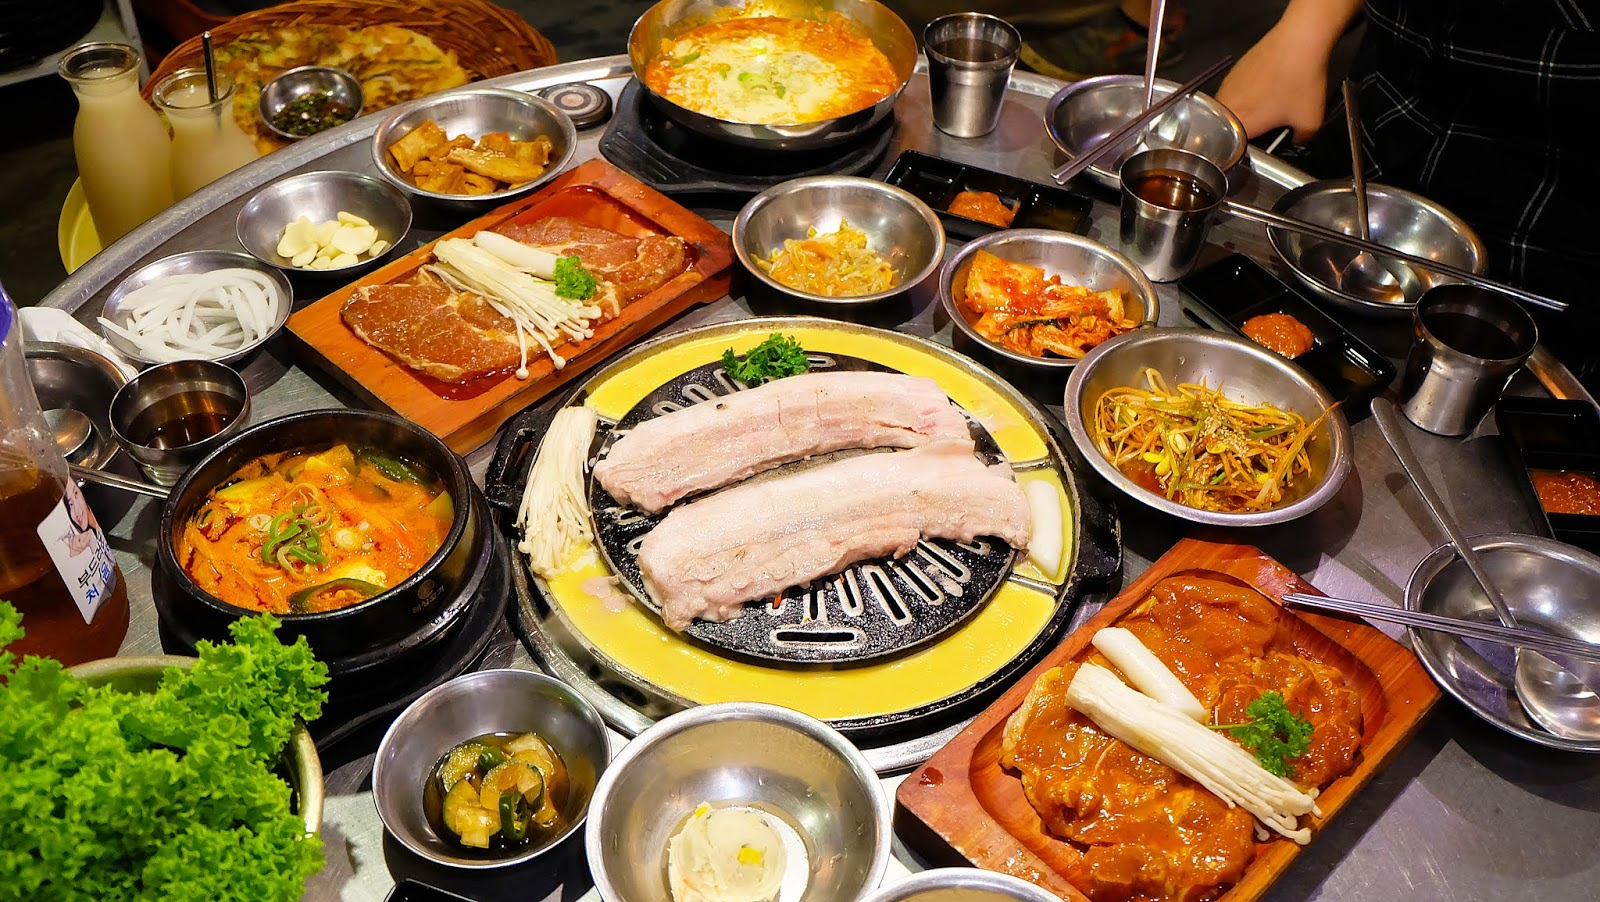 REVIEW: WANG DAE BAK KOREAN RESTAURANT